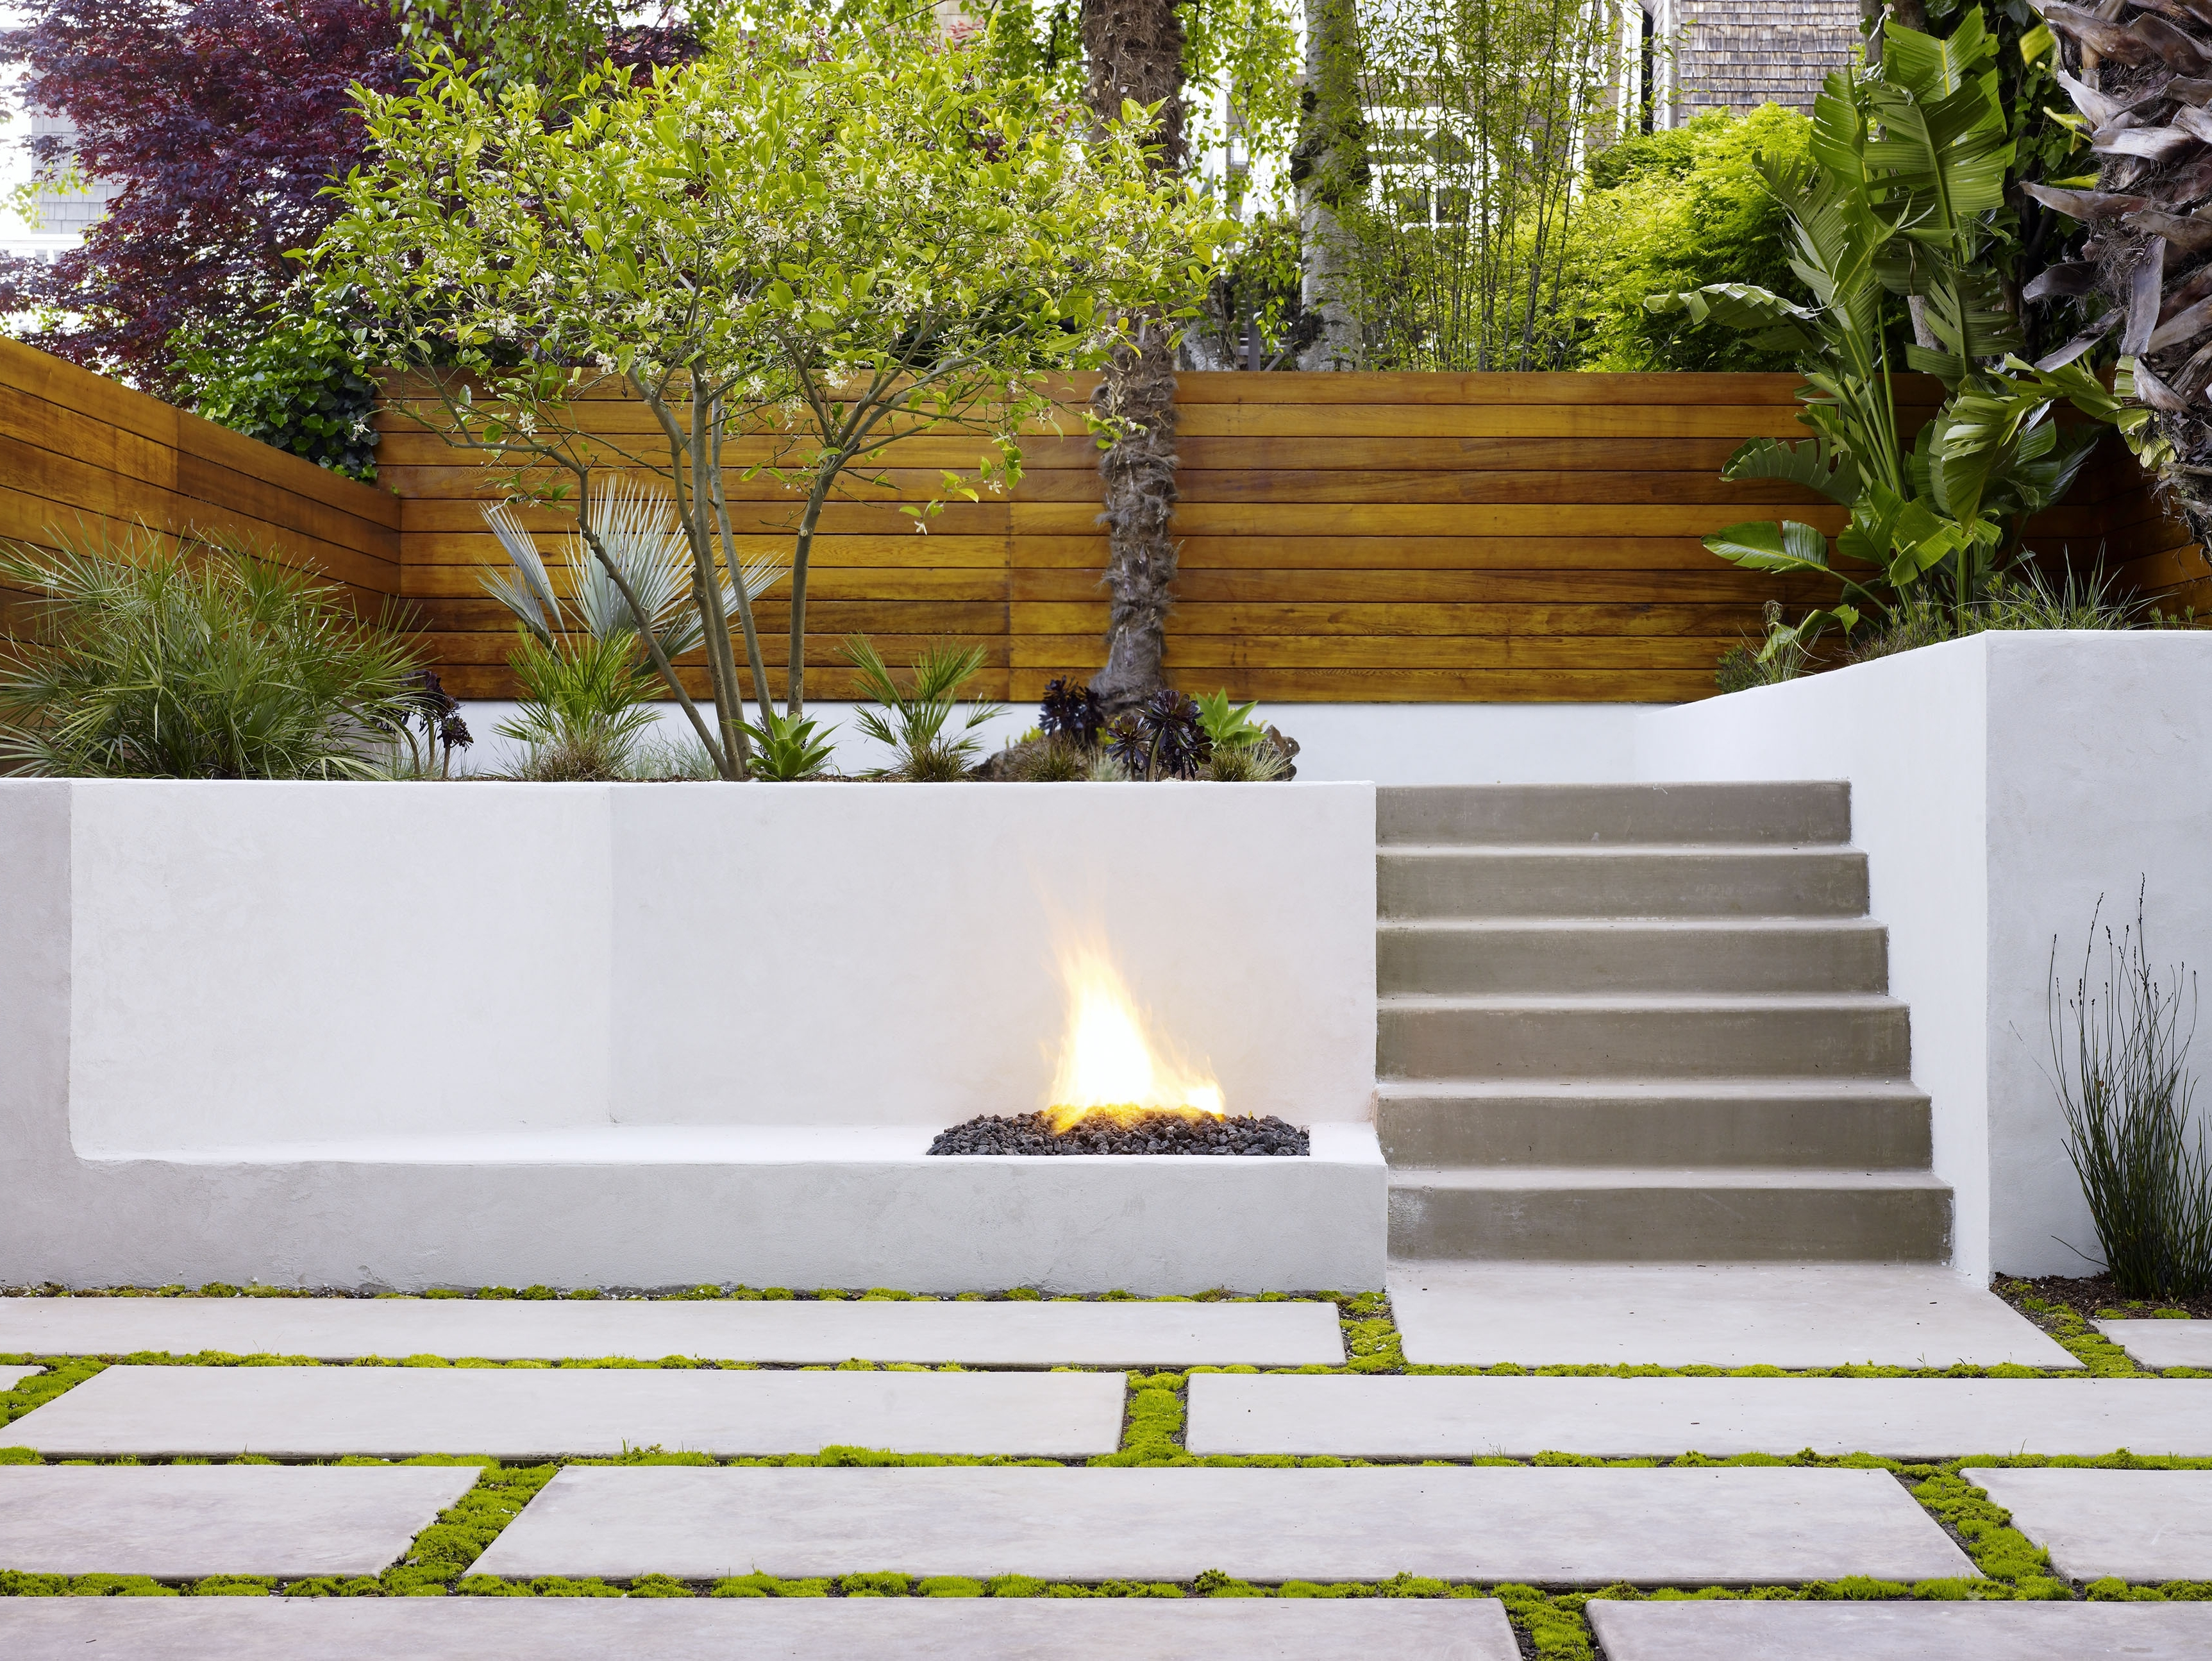 2018 Concrete Retaining Wall Ideas For Attractive Garden Landscape Design Intended For Outdoor Retaining Wall Lighting (View 2 of 20)